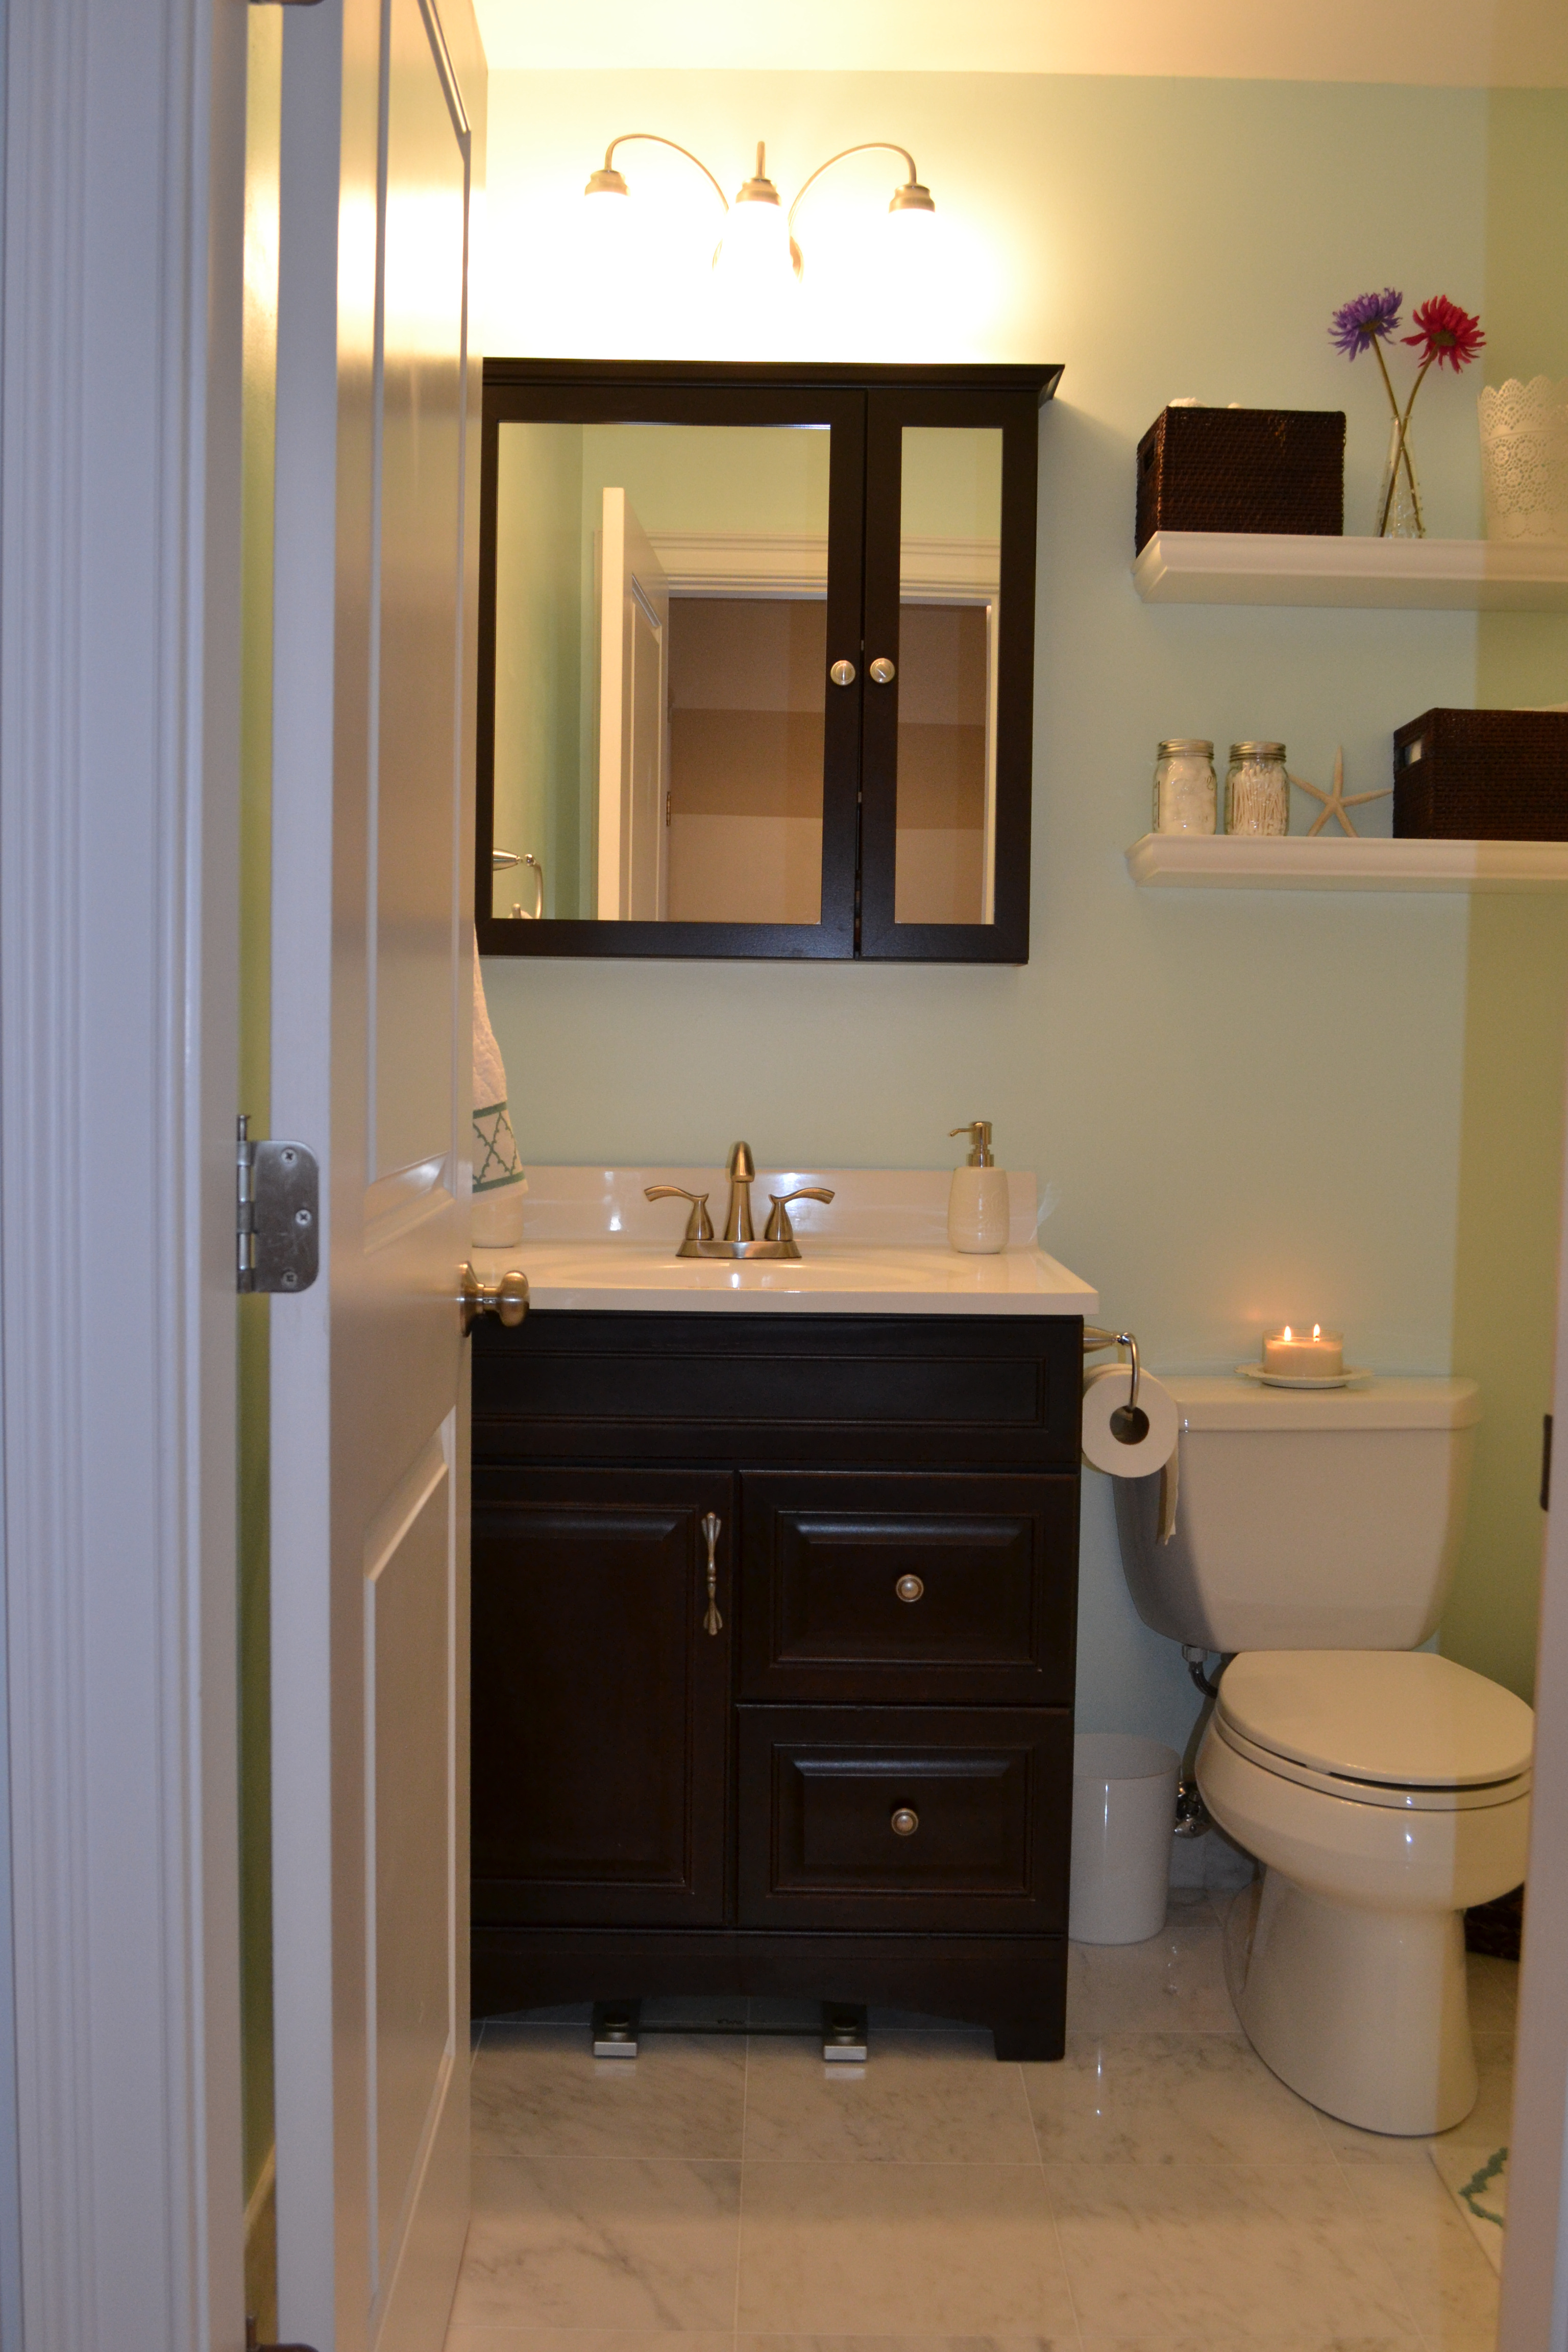 Decorating Ideas for Small Bathrooms Awesome Elegant Bathroom Wall Decorating Ideas Small Bathrooms